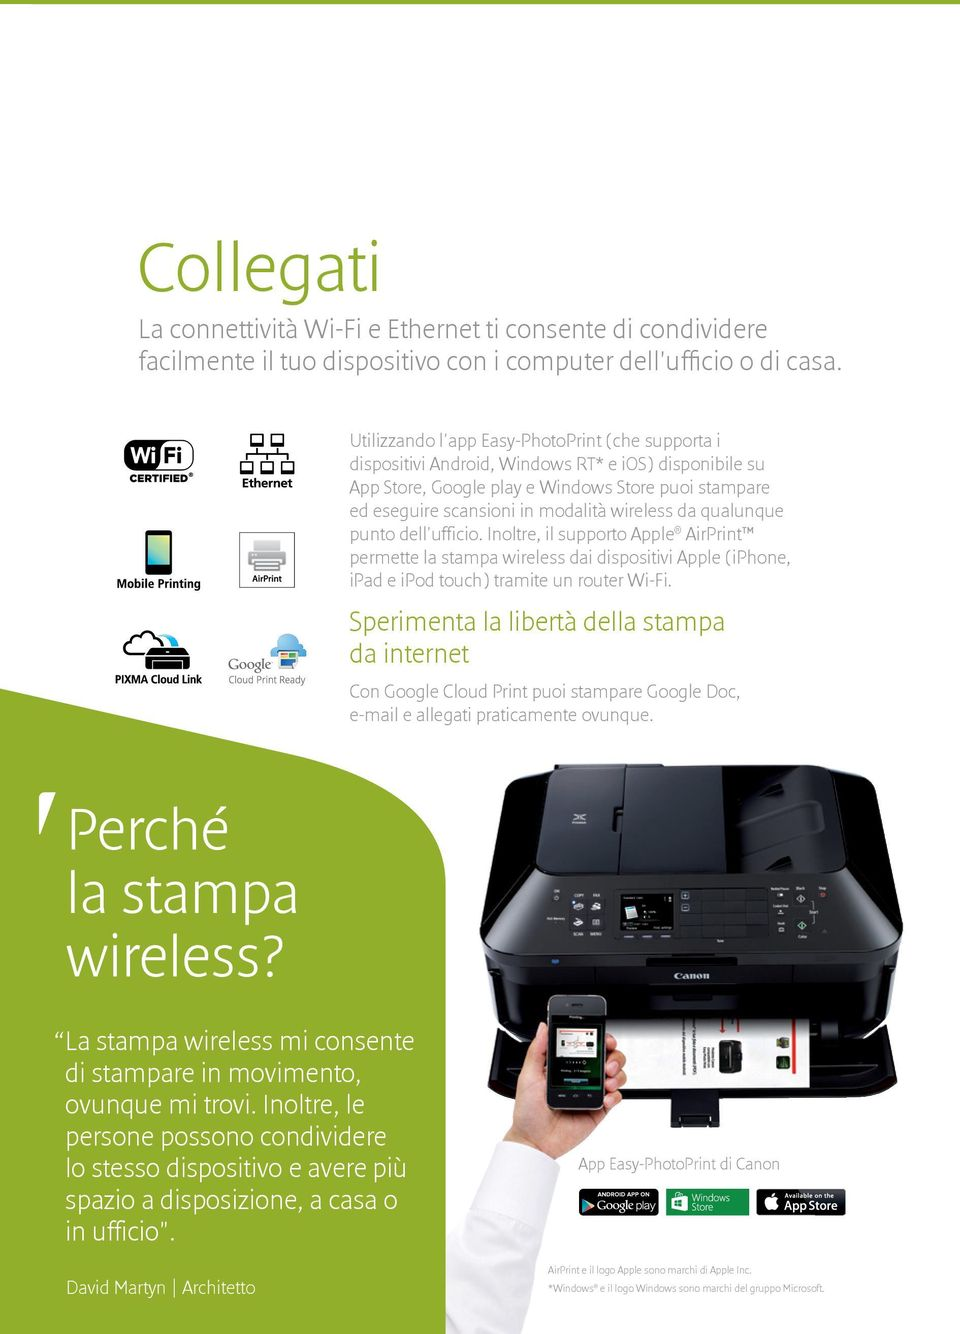 wireless da qualunque punto dell'ufficio. Inoltre, il supporto Apple AirPrint permette la stampa wireless dai dispositivi Apple (iphone, ipad e ipod touch) tramite un router Wi-Fi.